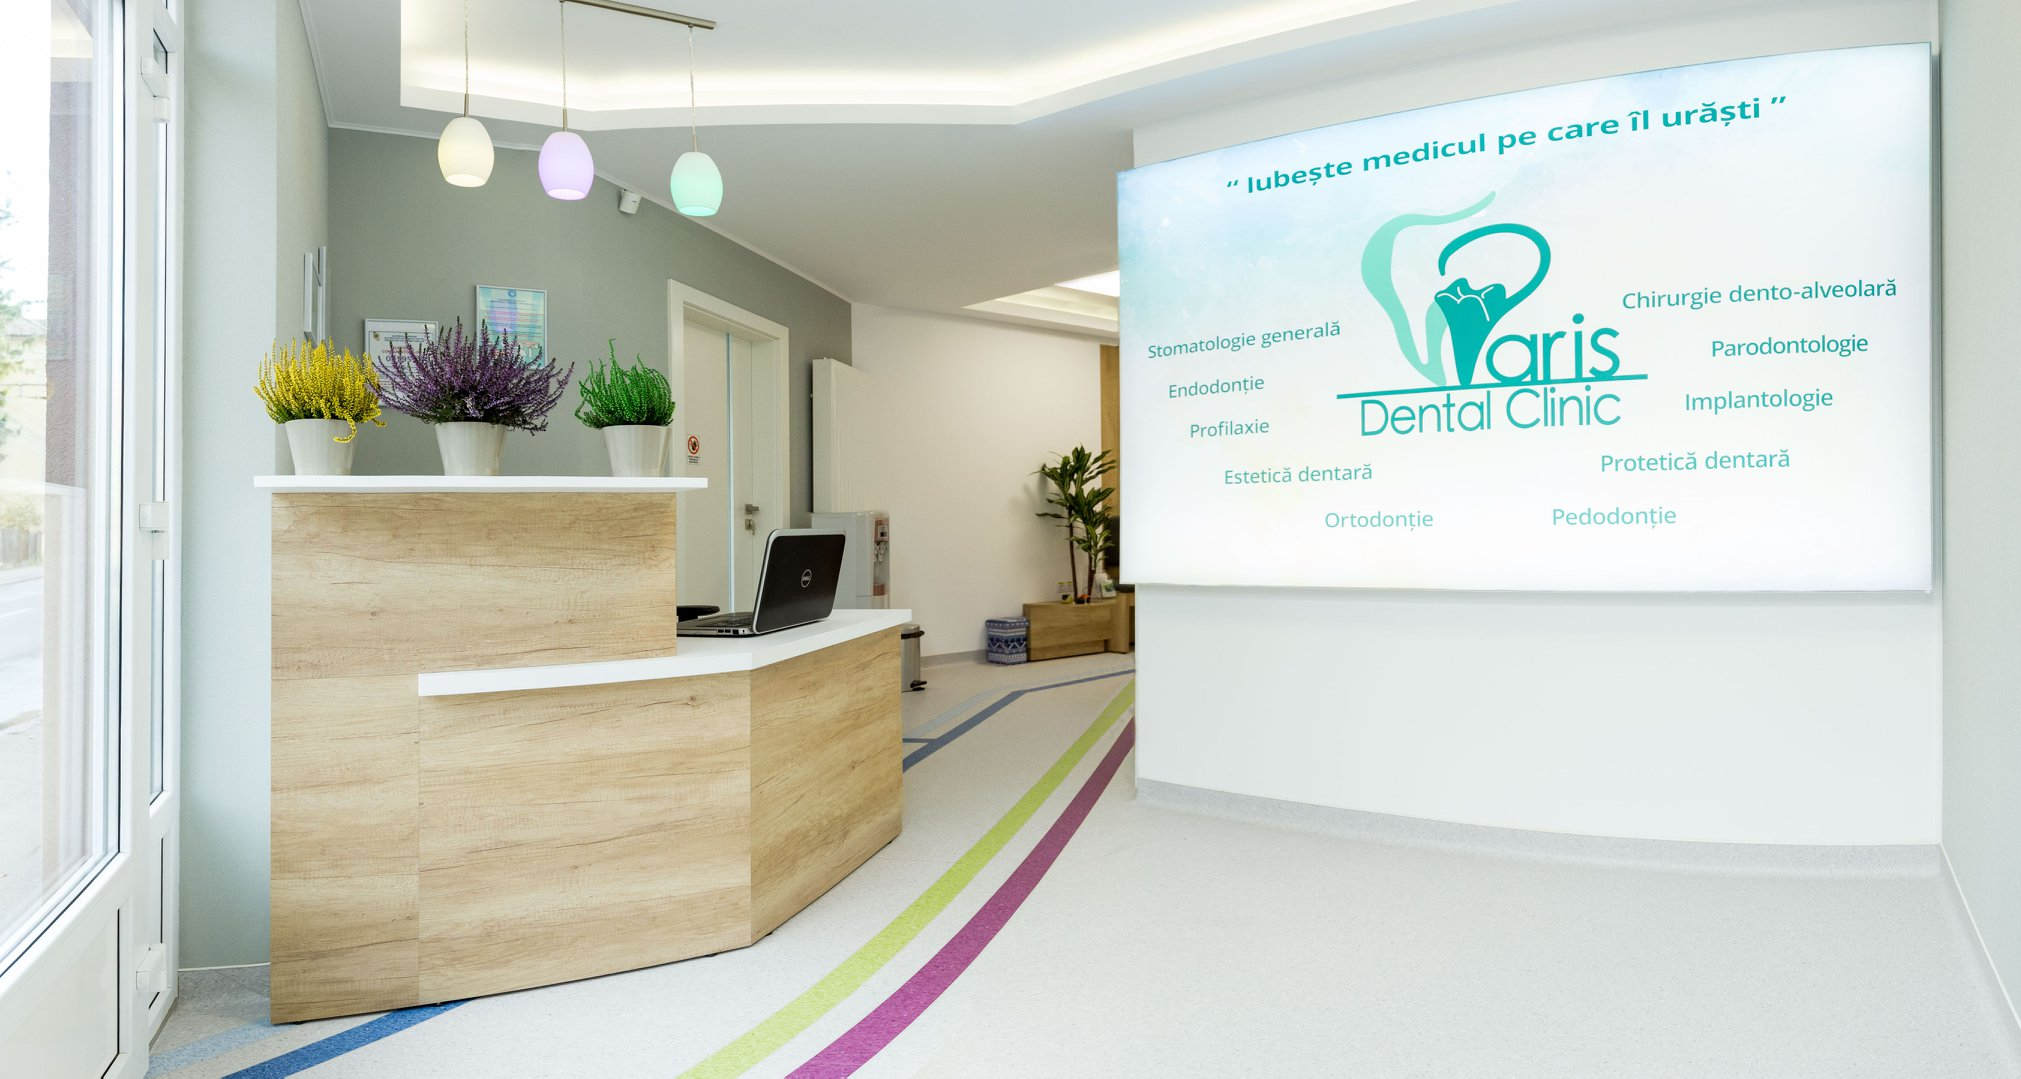 paris-dental-clinic